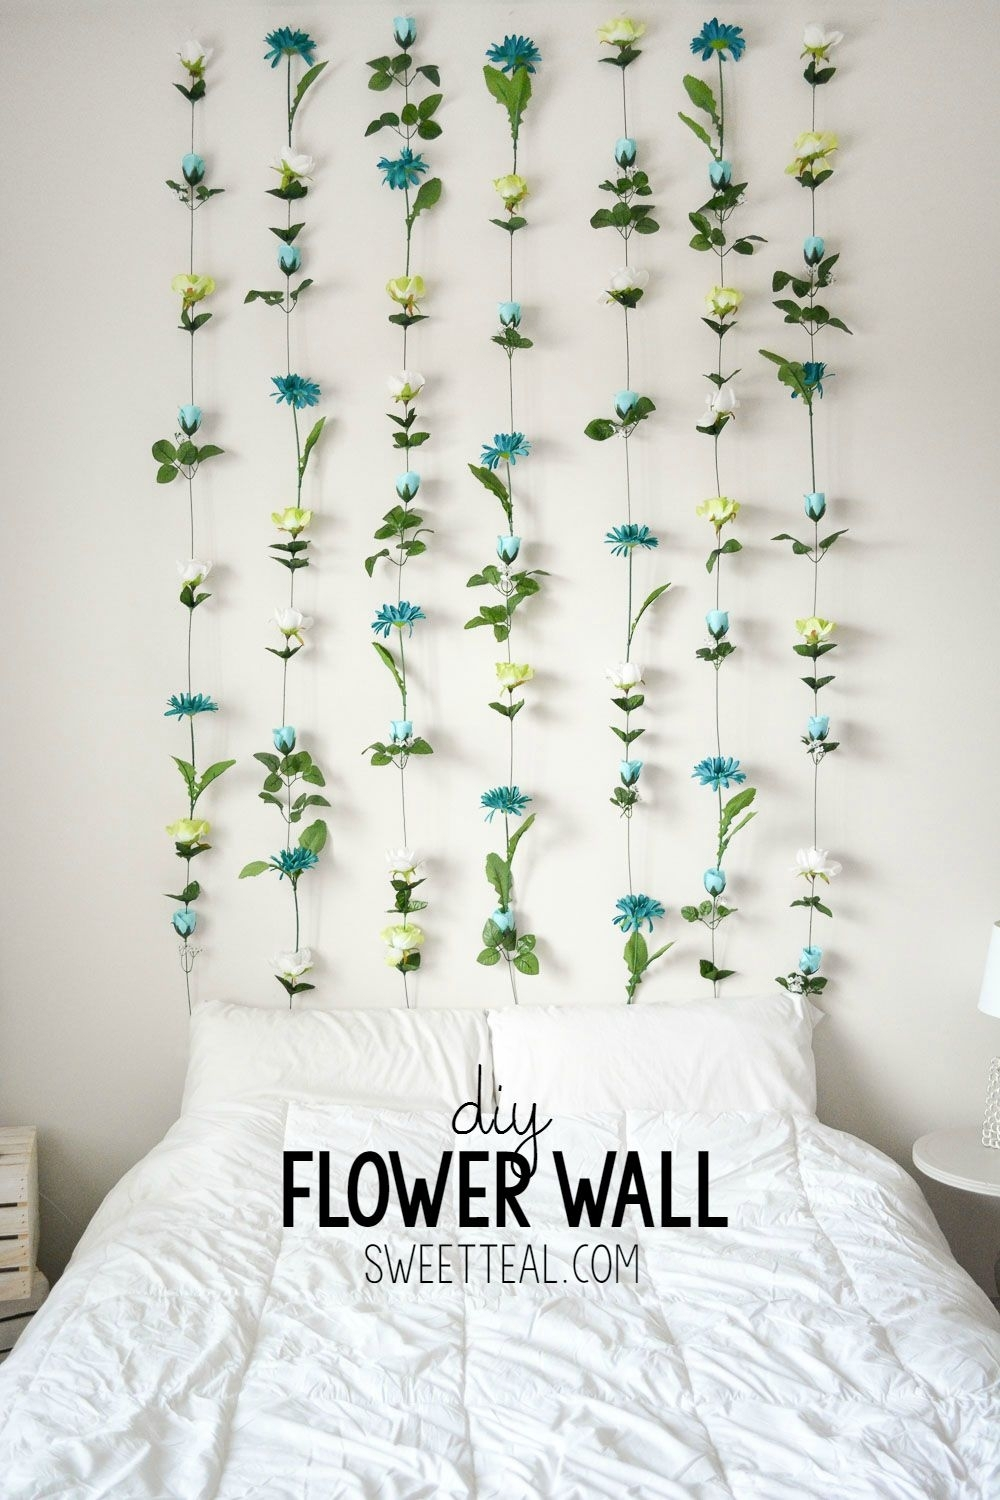 Diy Flower Wall // Headboard // Home Decor | Wall Headboard, Diy in Most Popular Diy Wall Accents